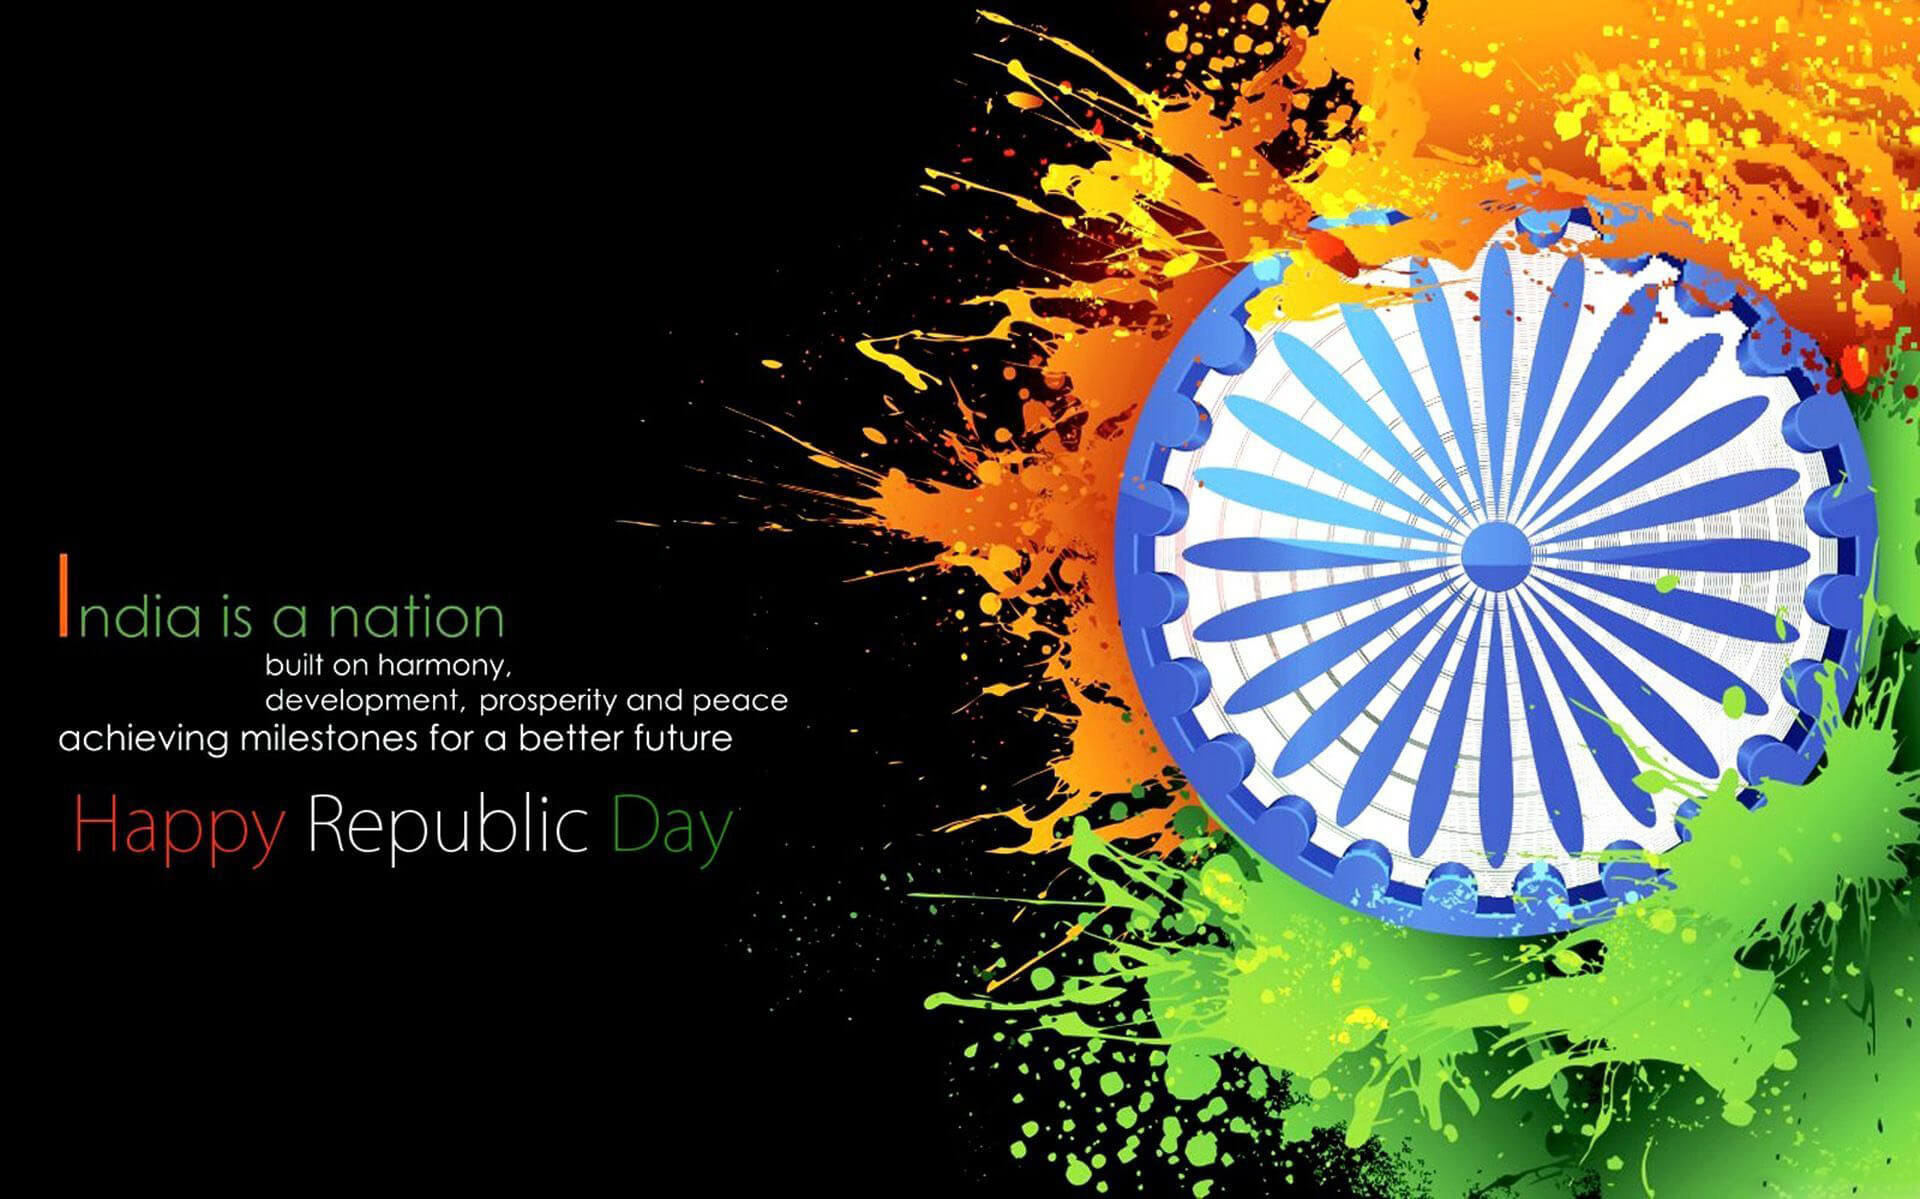 happy republic day wishes greetings india 26th january hd pc wallpaper